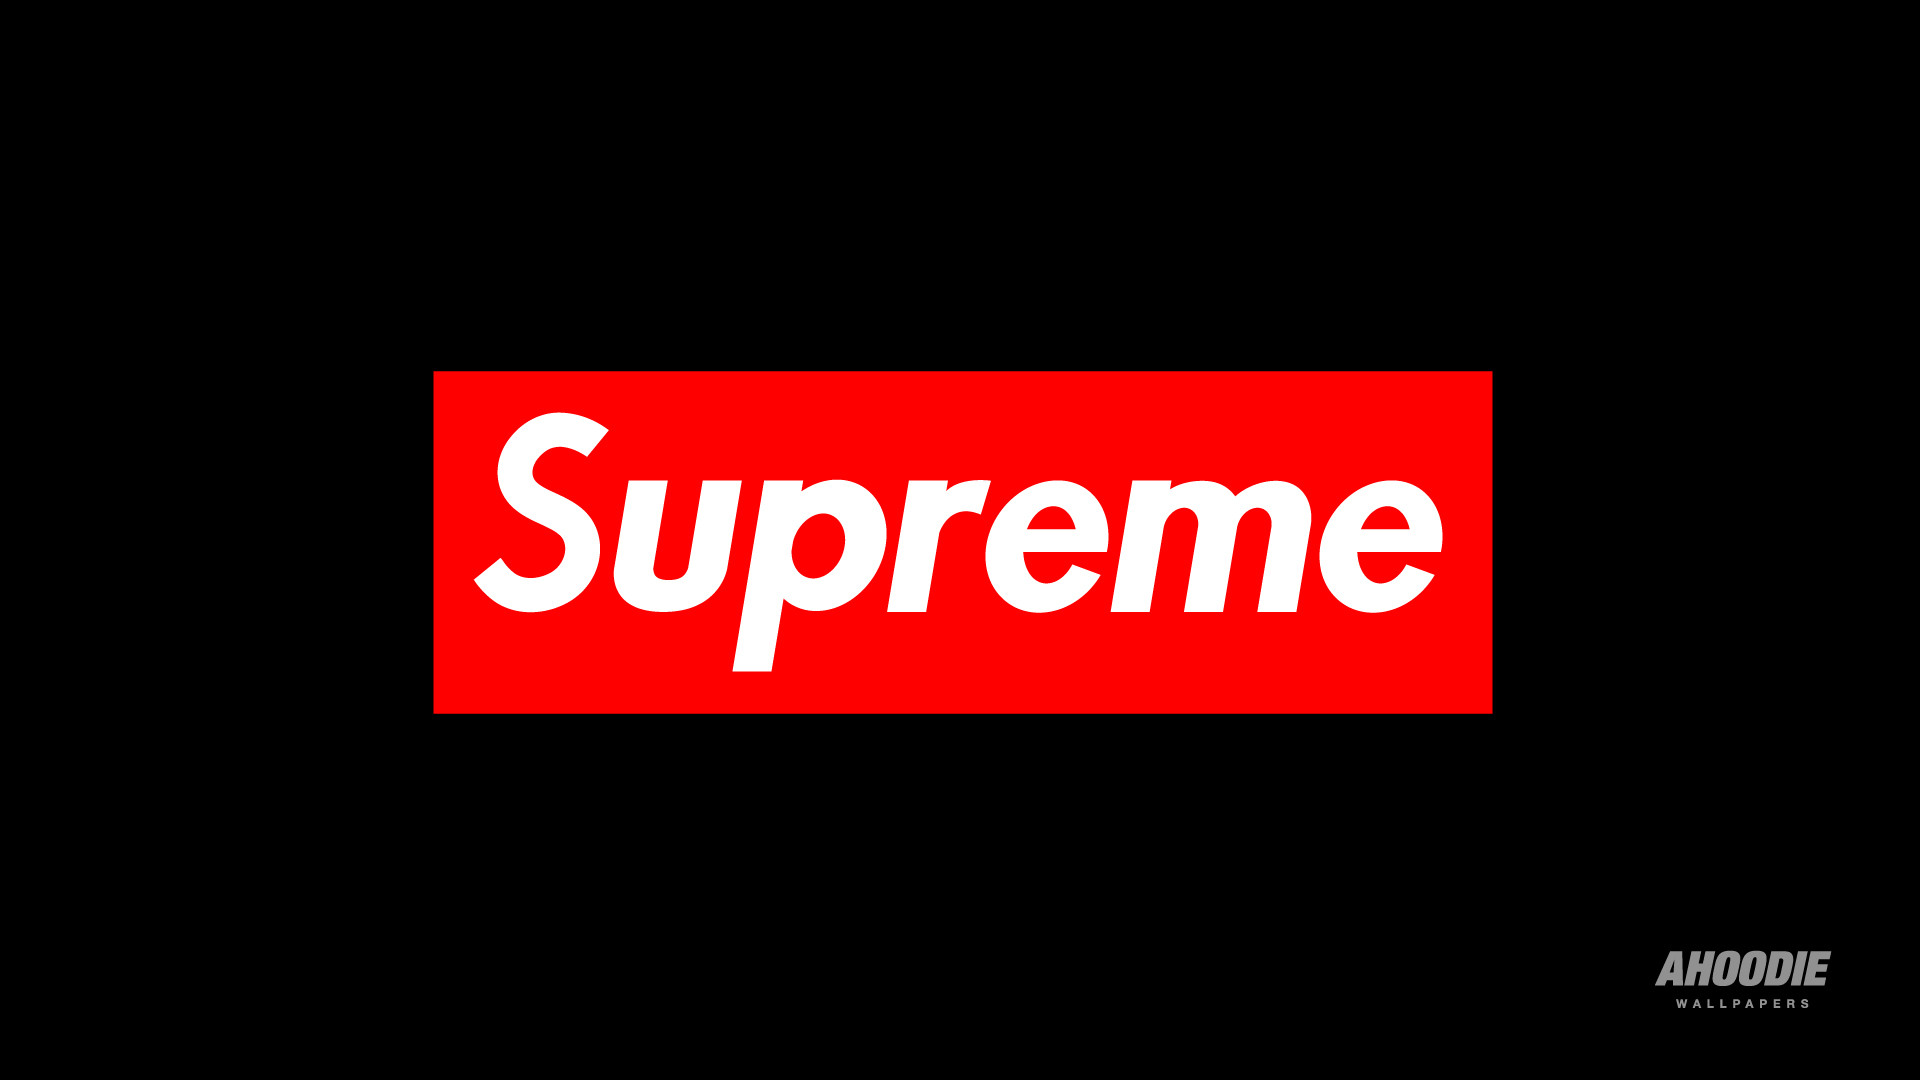 1920x1080 Supreme wallpaper 225064